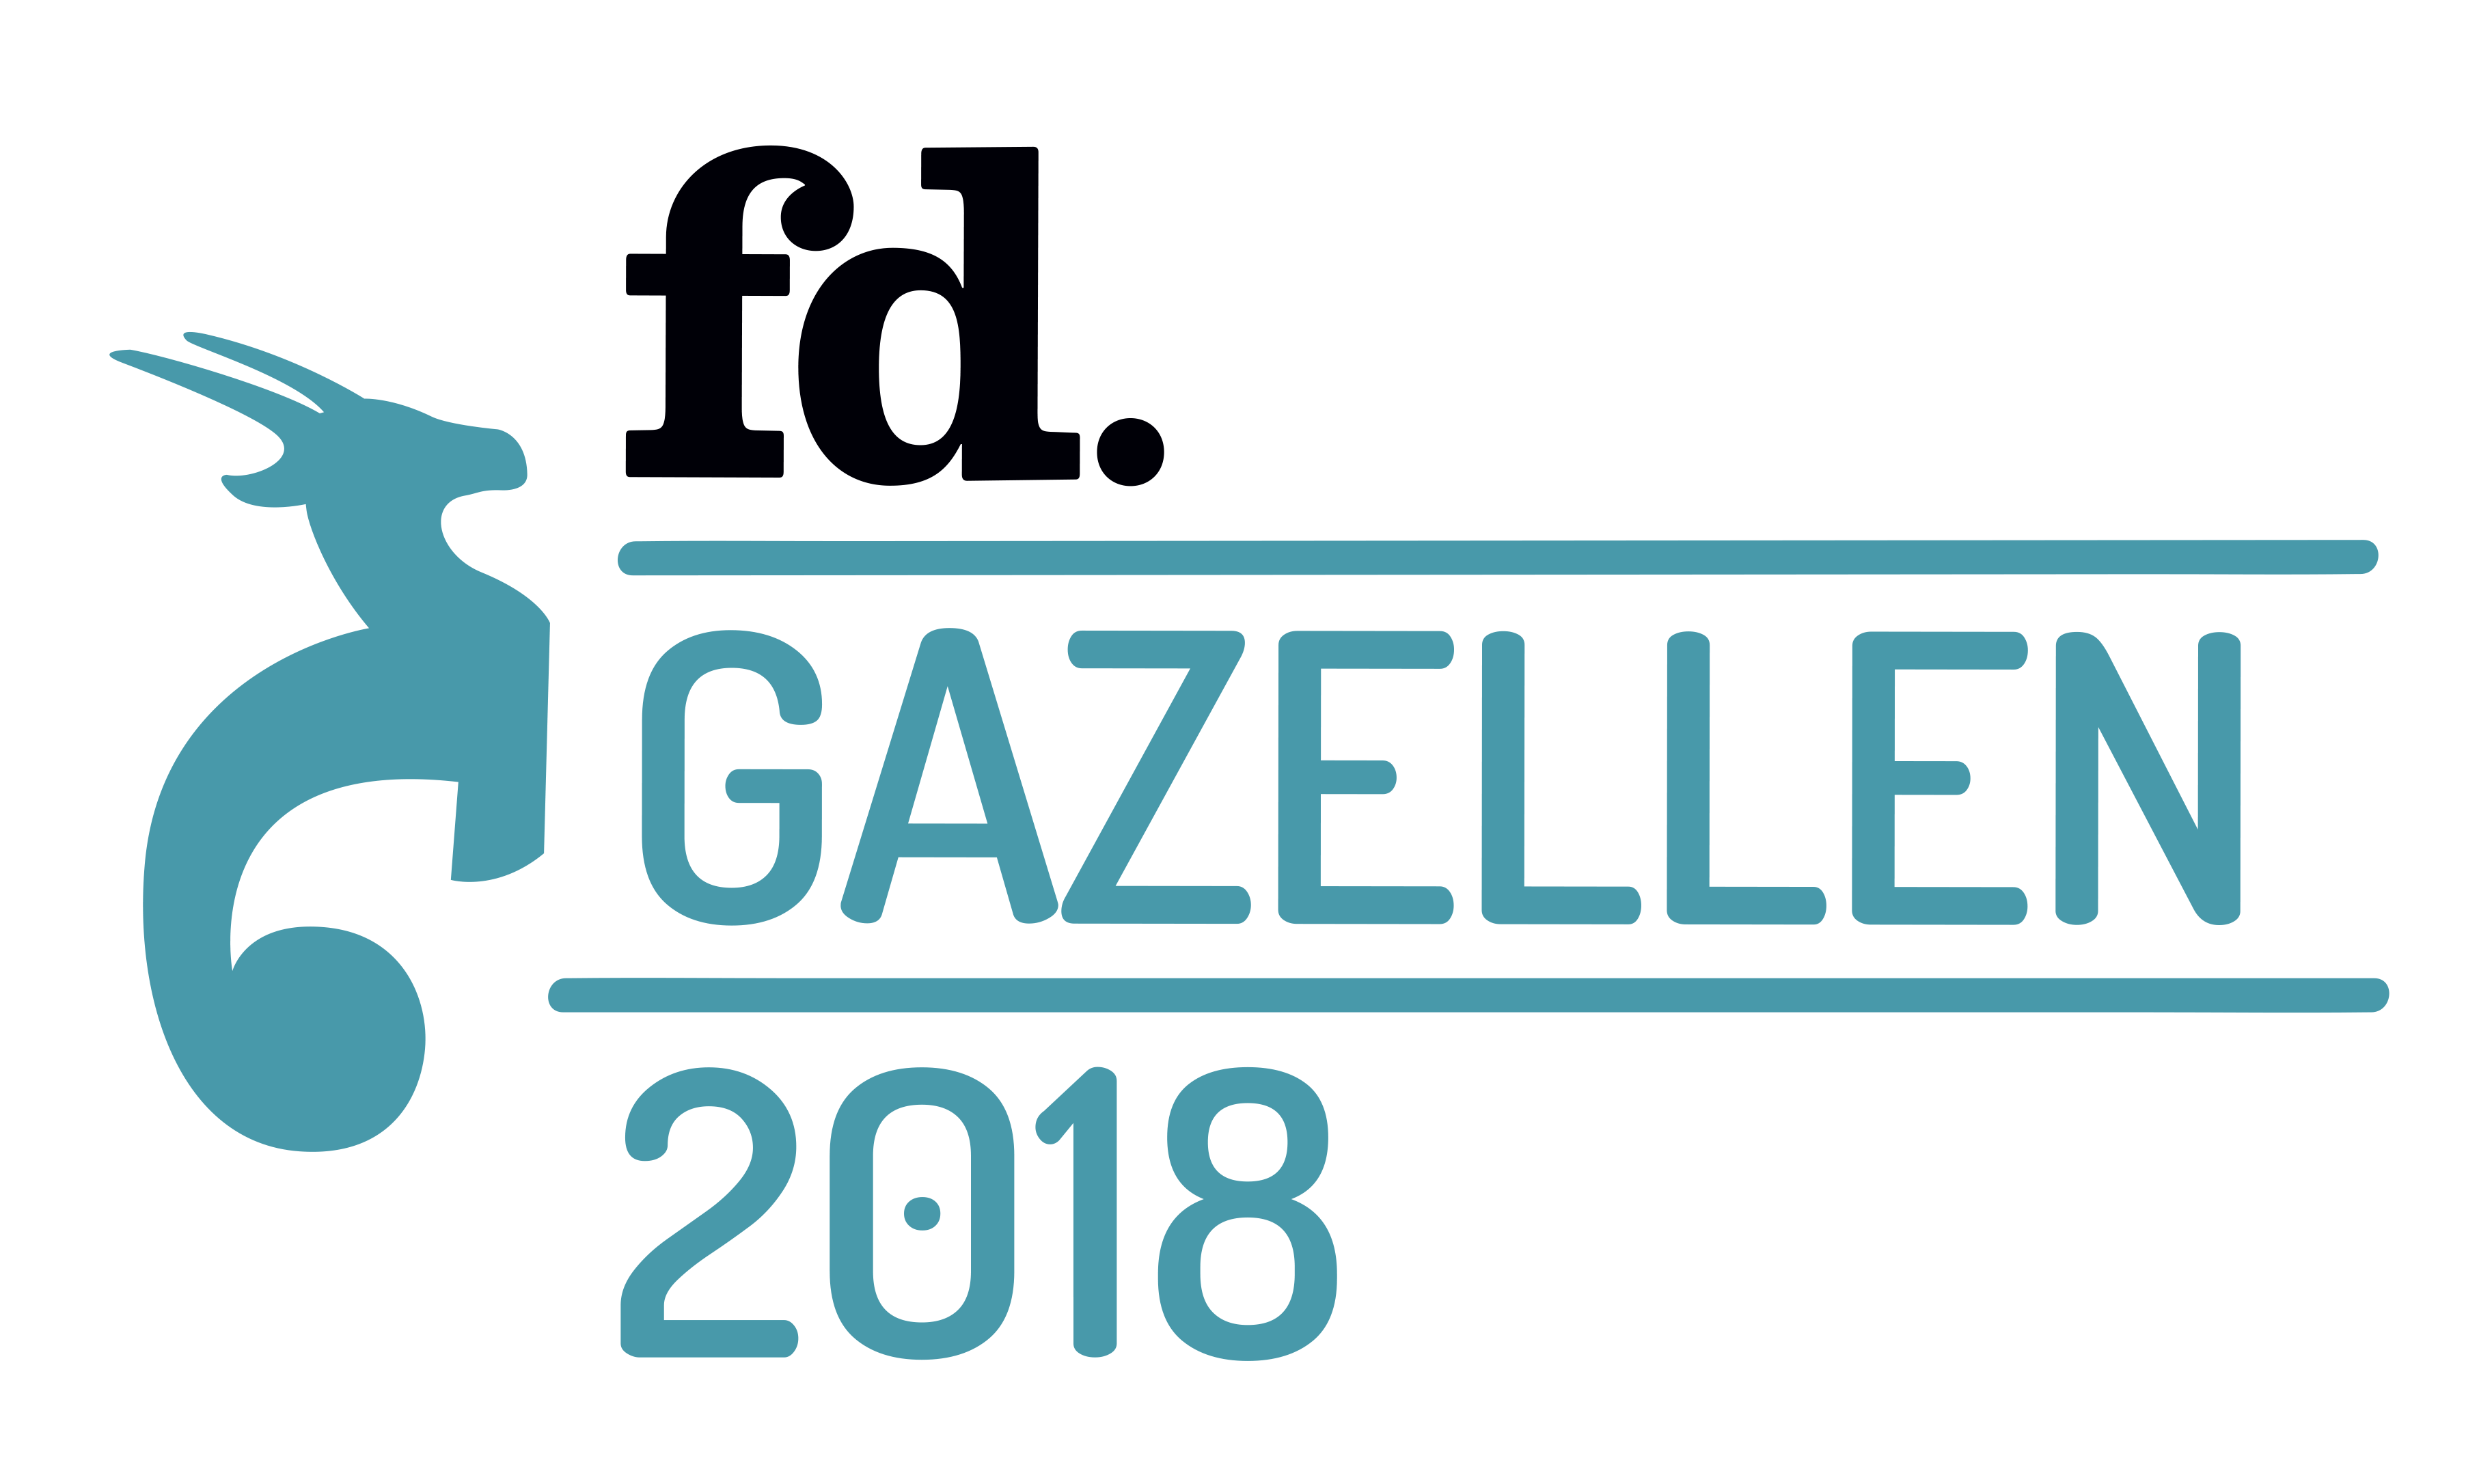 RR Mechatronics gazellen award 2018